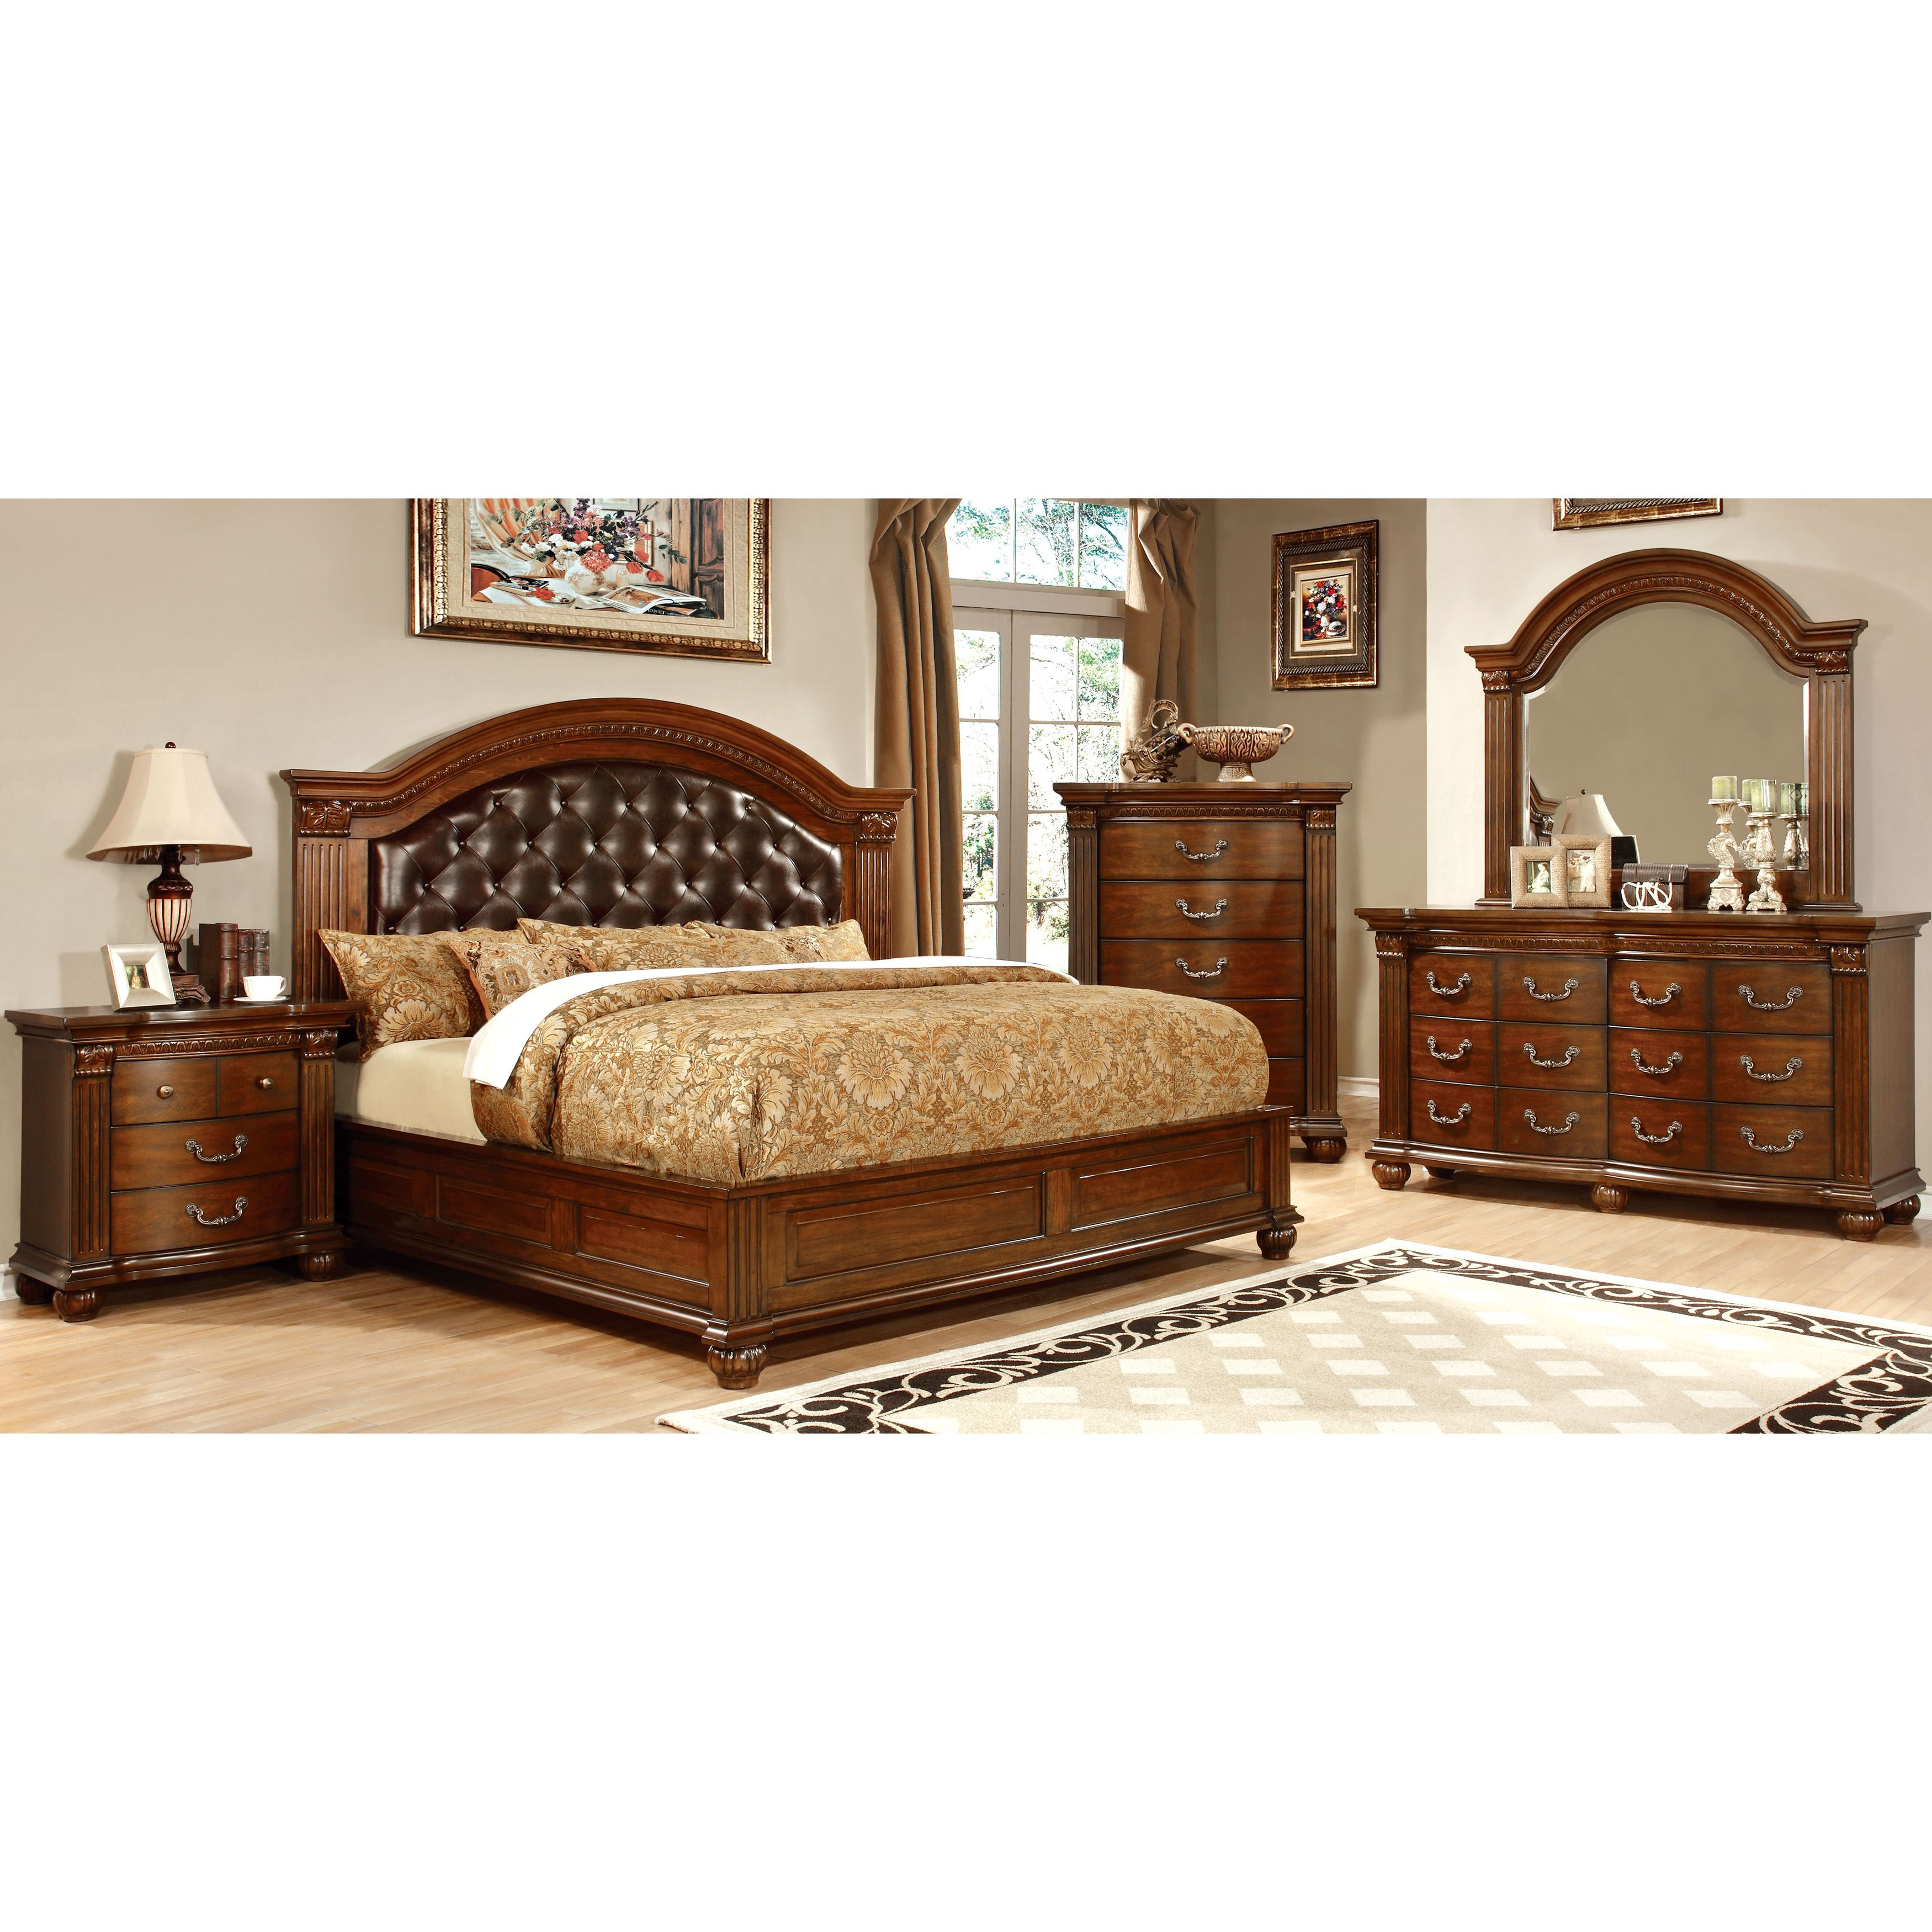 cal hermosa bedroom set king pry pc sets california